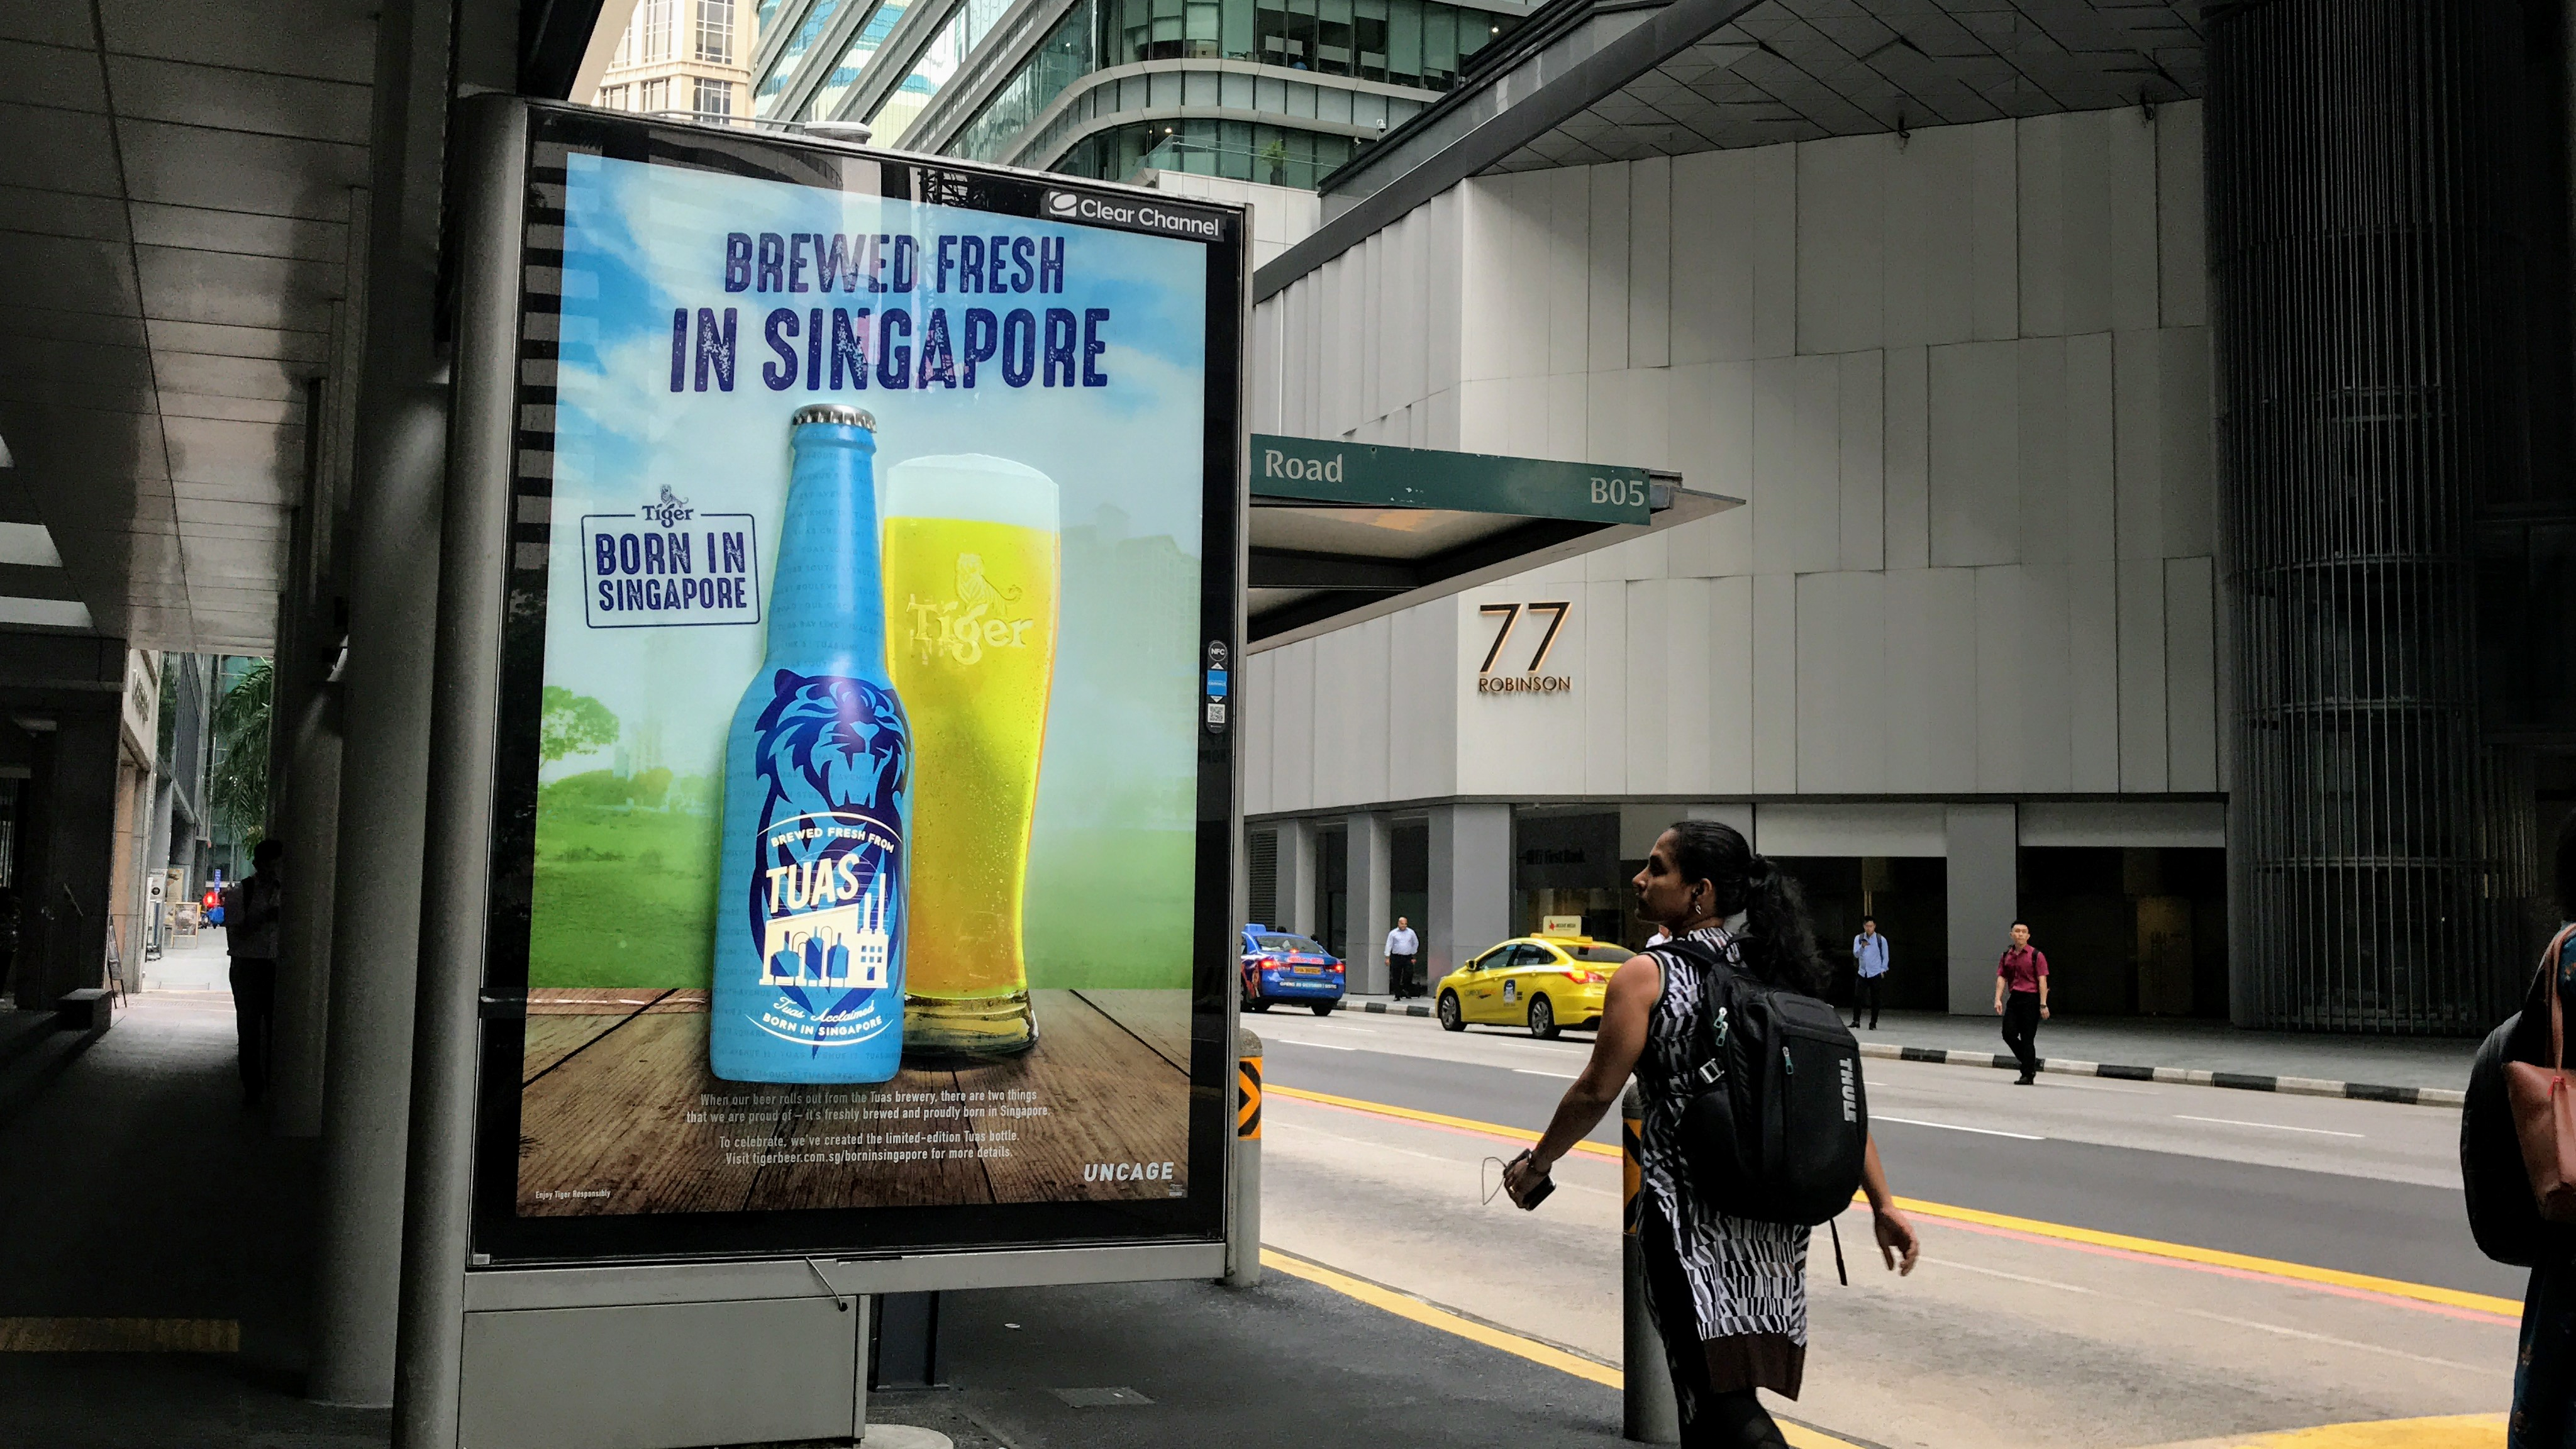 Tiger Beerhas launched larger than life 3D versions of its bottle at bus shelters